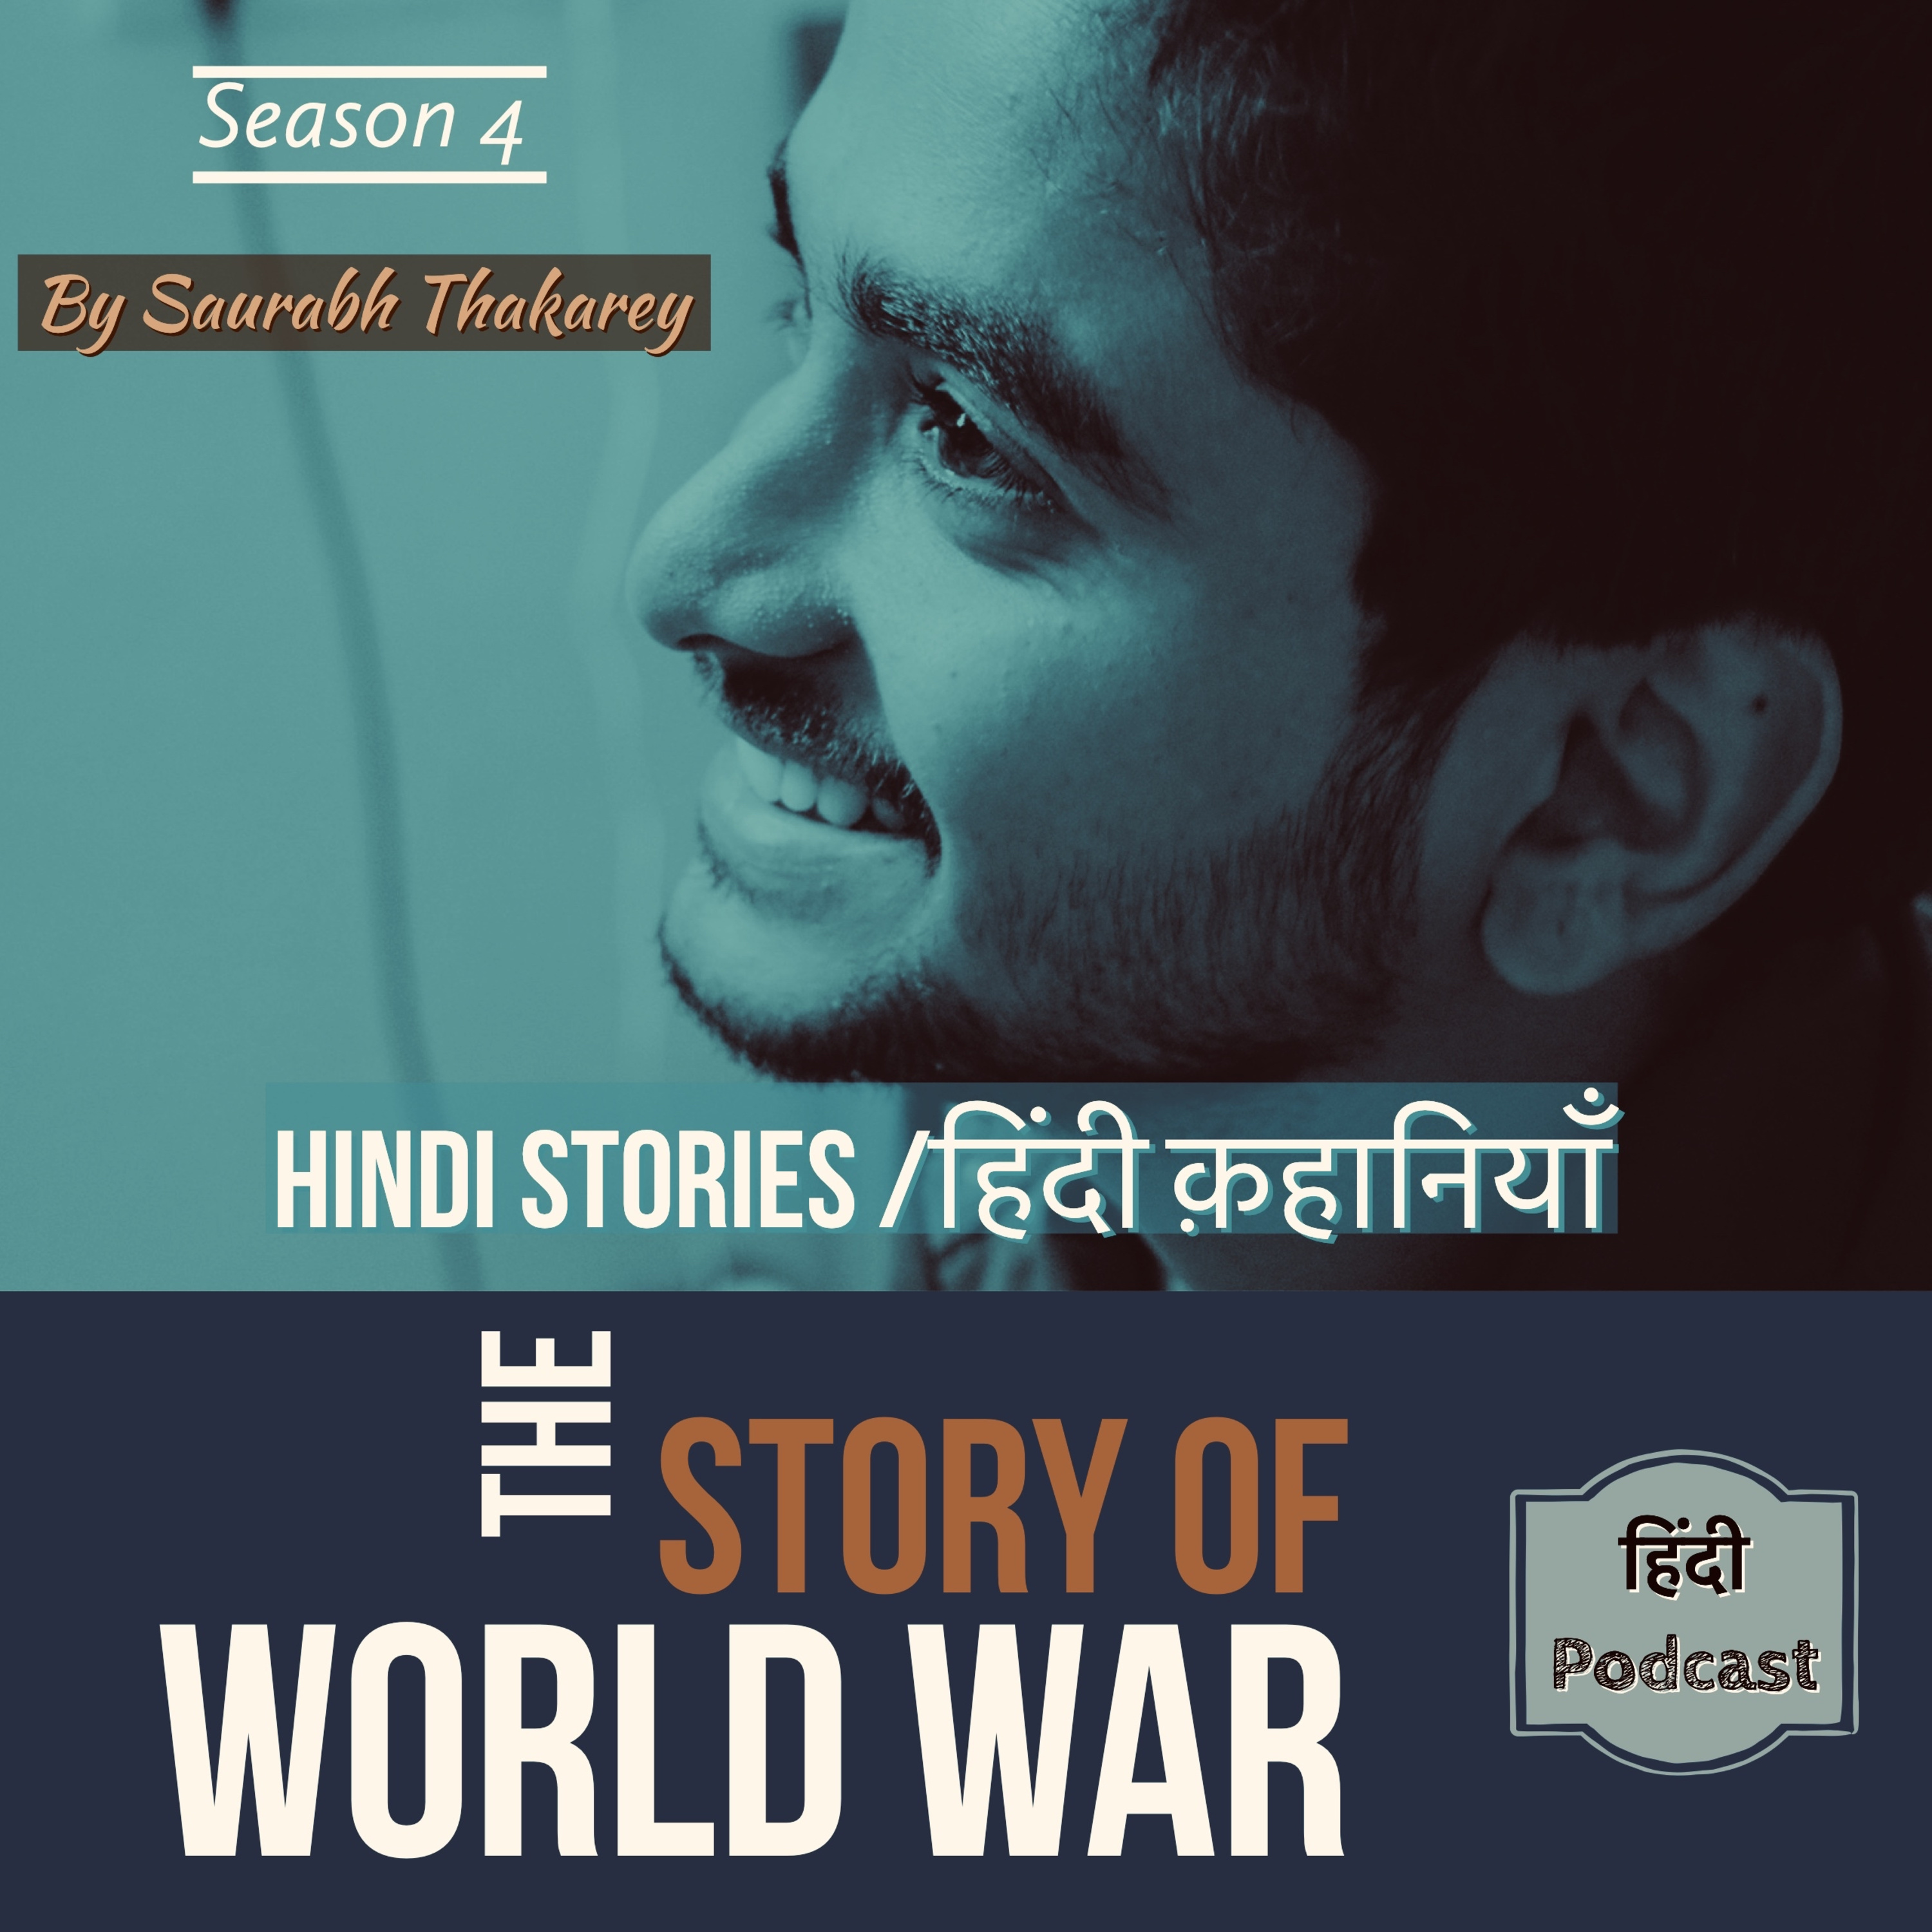 #30 WORLD WAR | Ep. 9 Ottoman Empire /Galipoli Invasion | विश्व युद्ध १